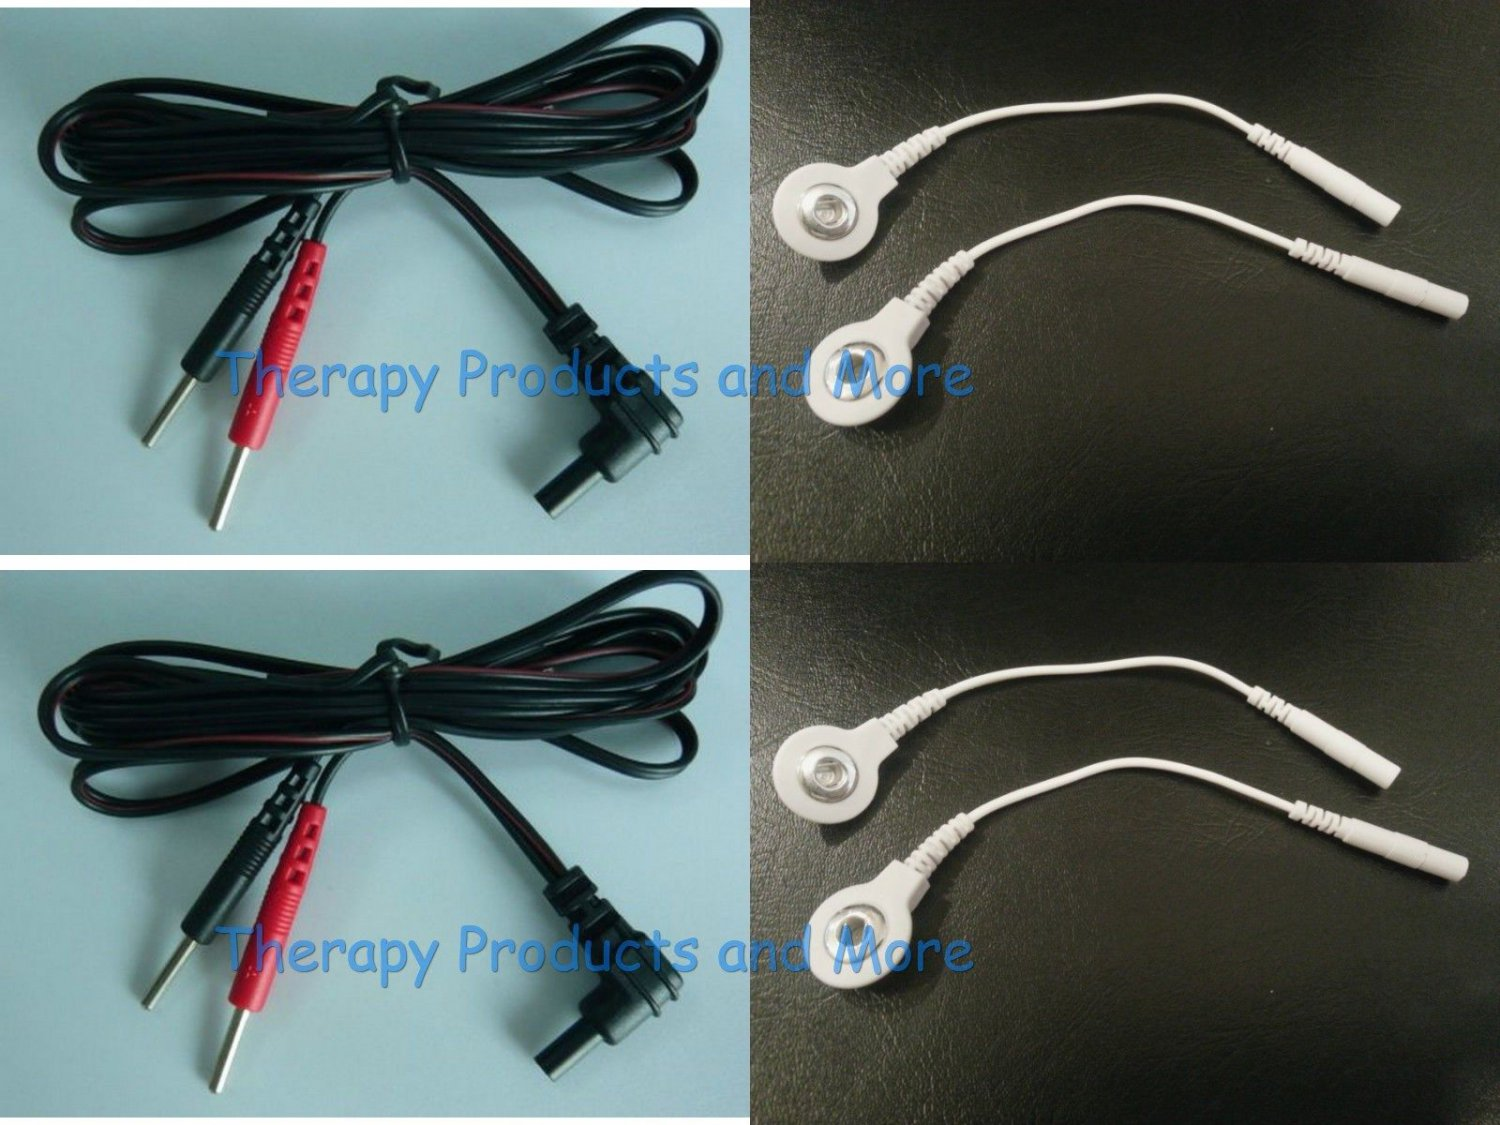 Replacement Electrode Cables-Use Snap or Pin Pads Compatible w/iReliev ET-7070